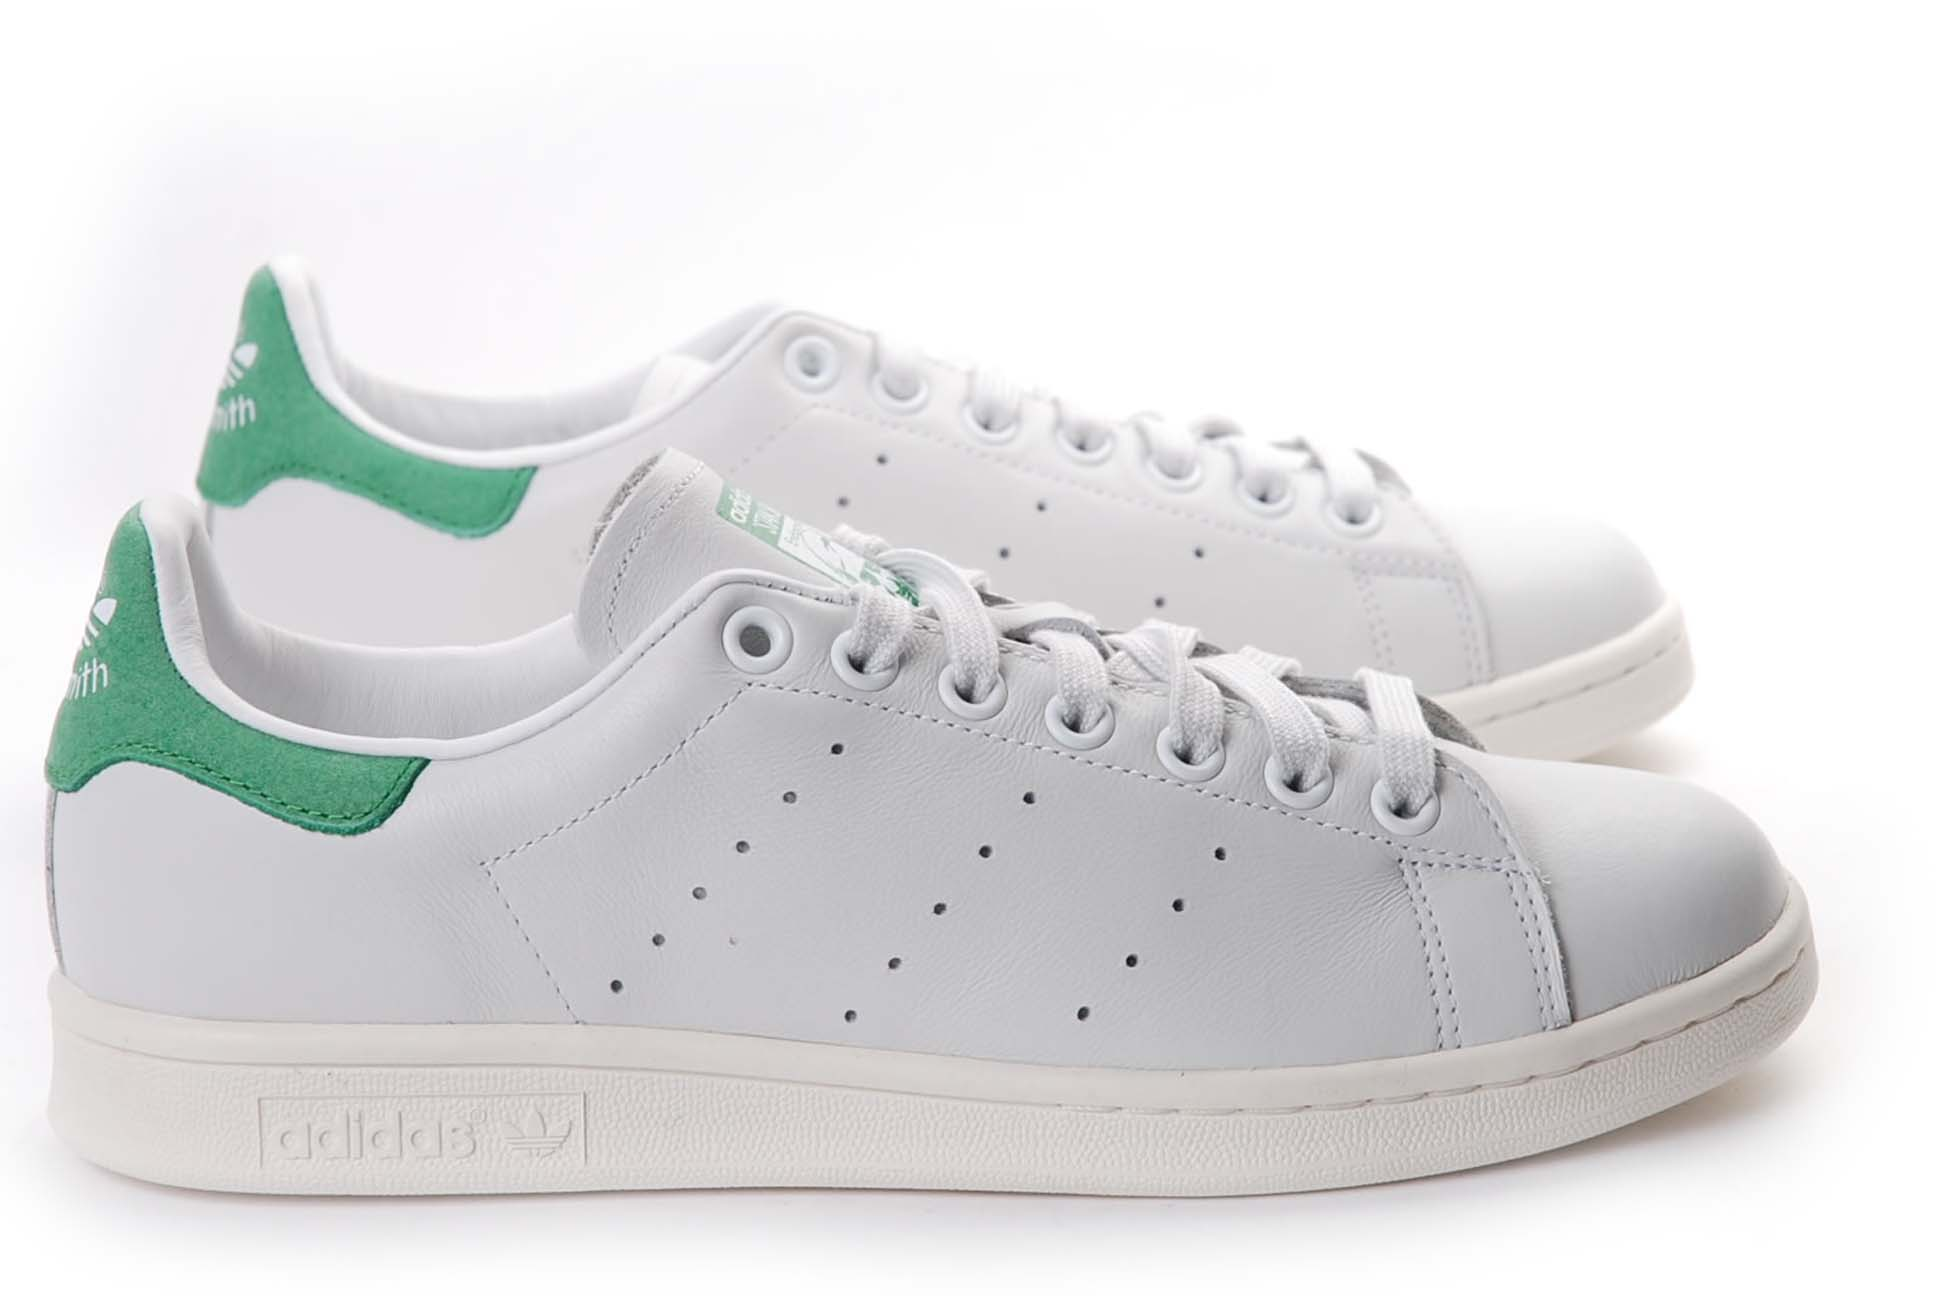 huge selection of 806e8 1b3fb adidas-stan-smith-blanche-et-verte---4.jpg